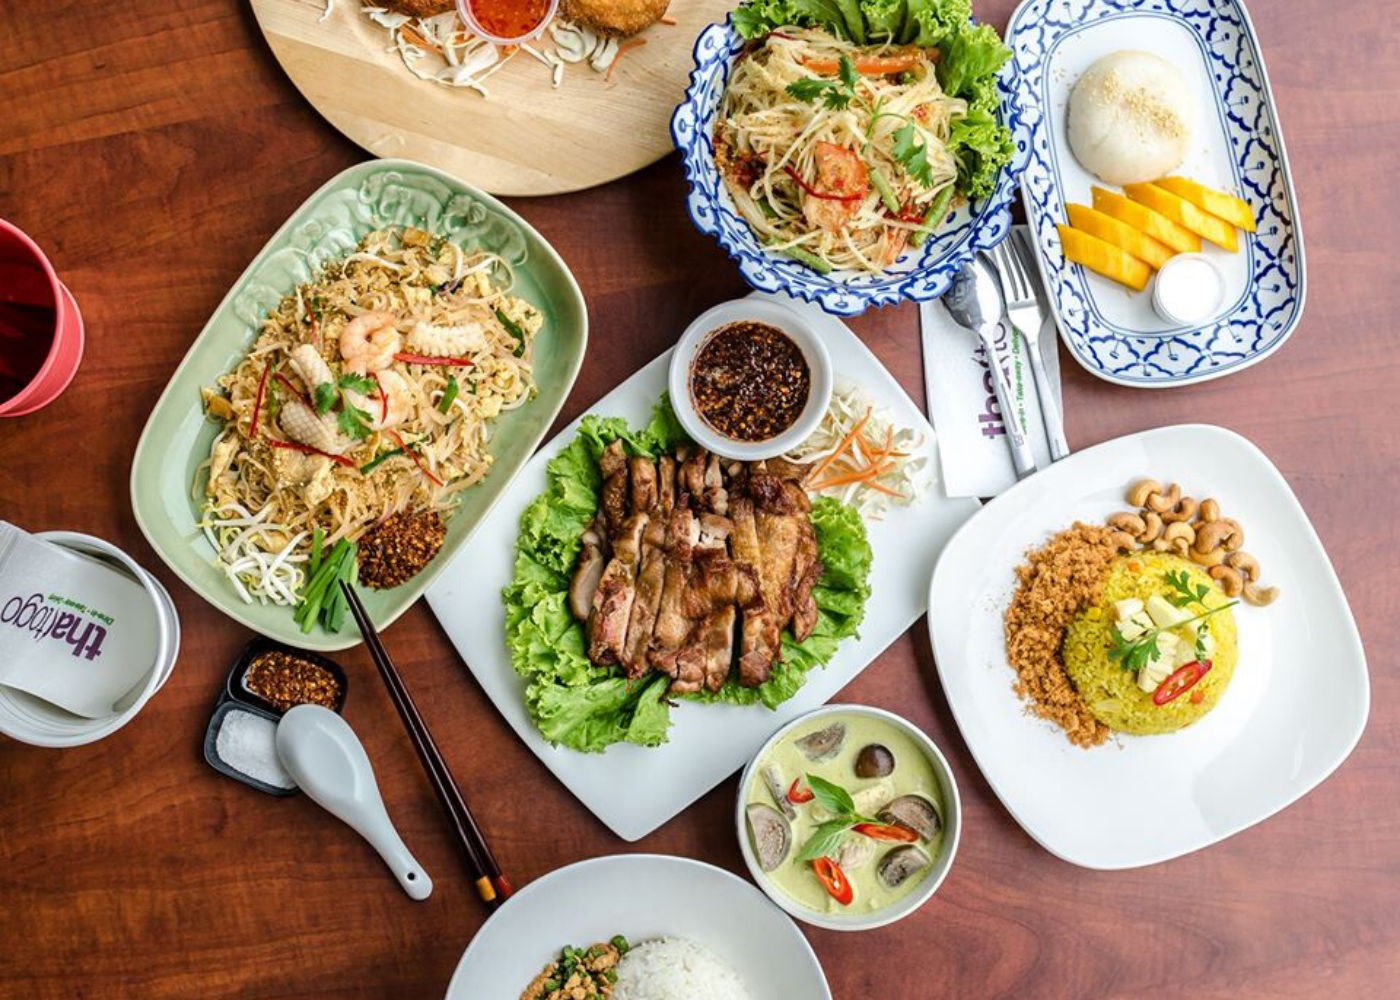 Food delivery services in Singapore: Thai To Go